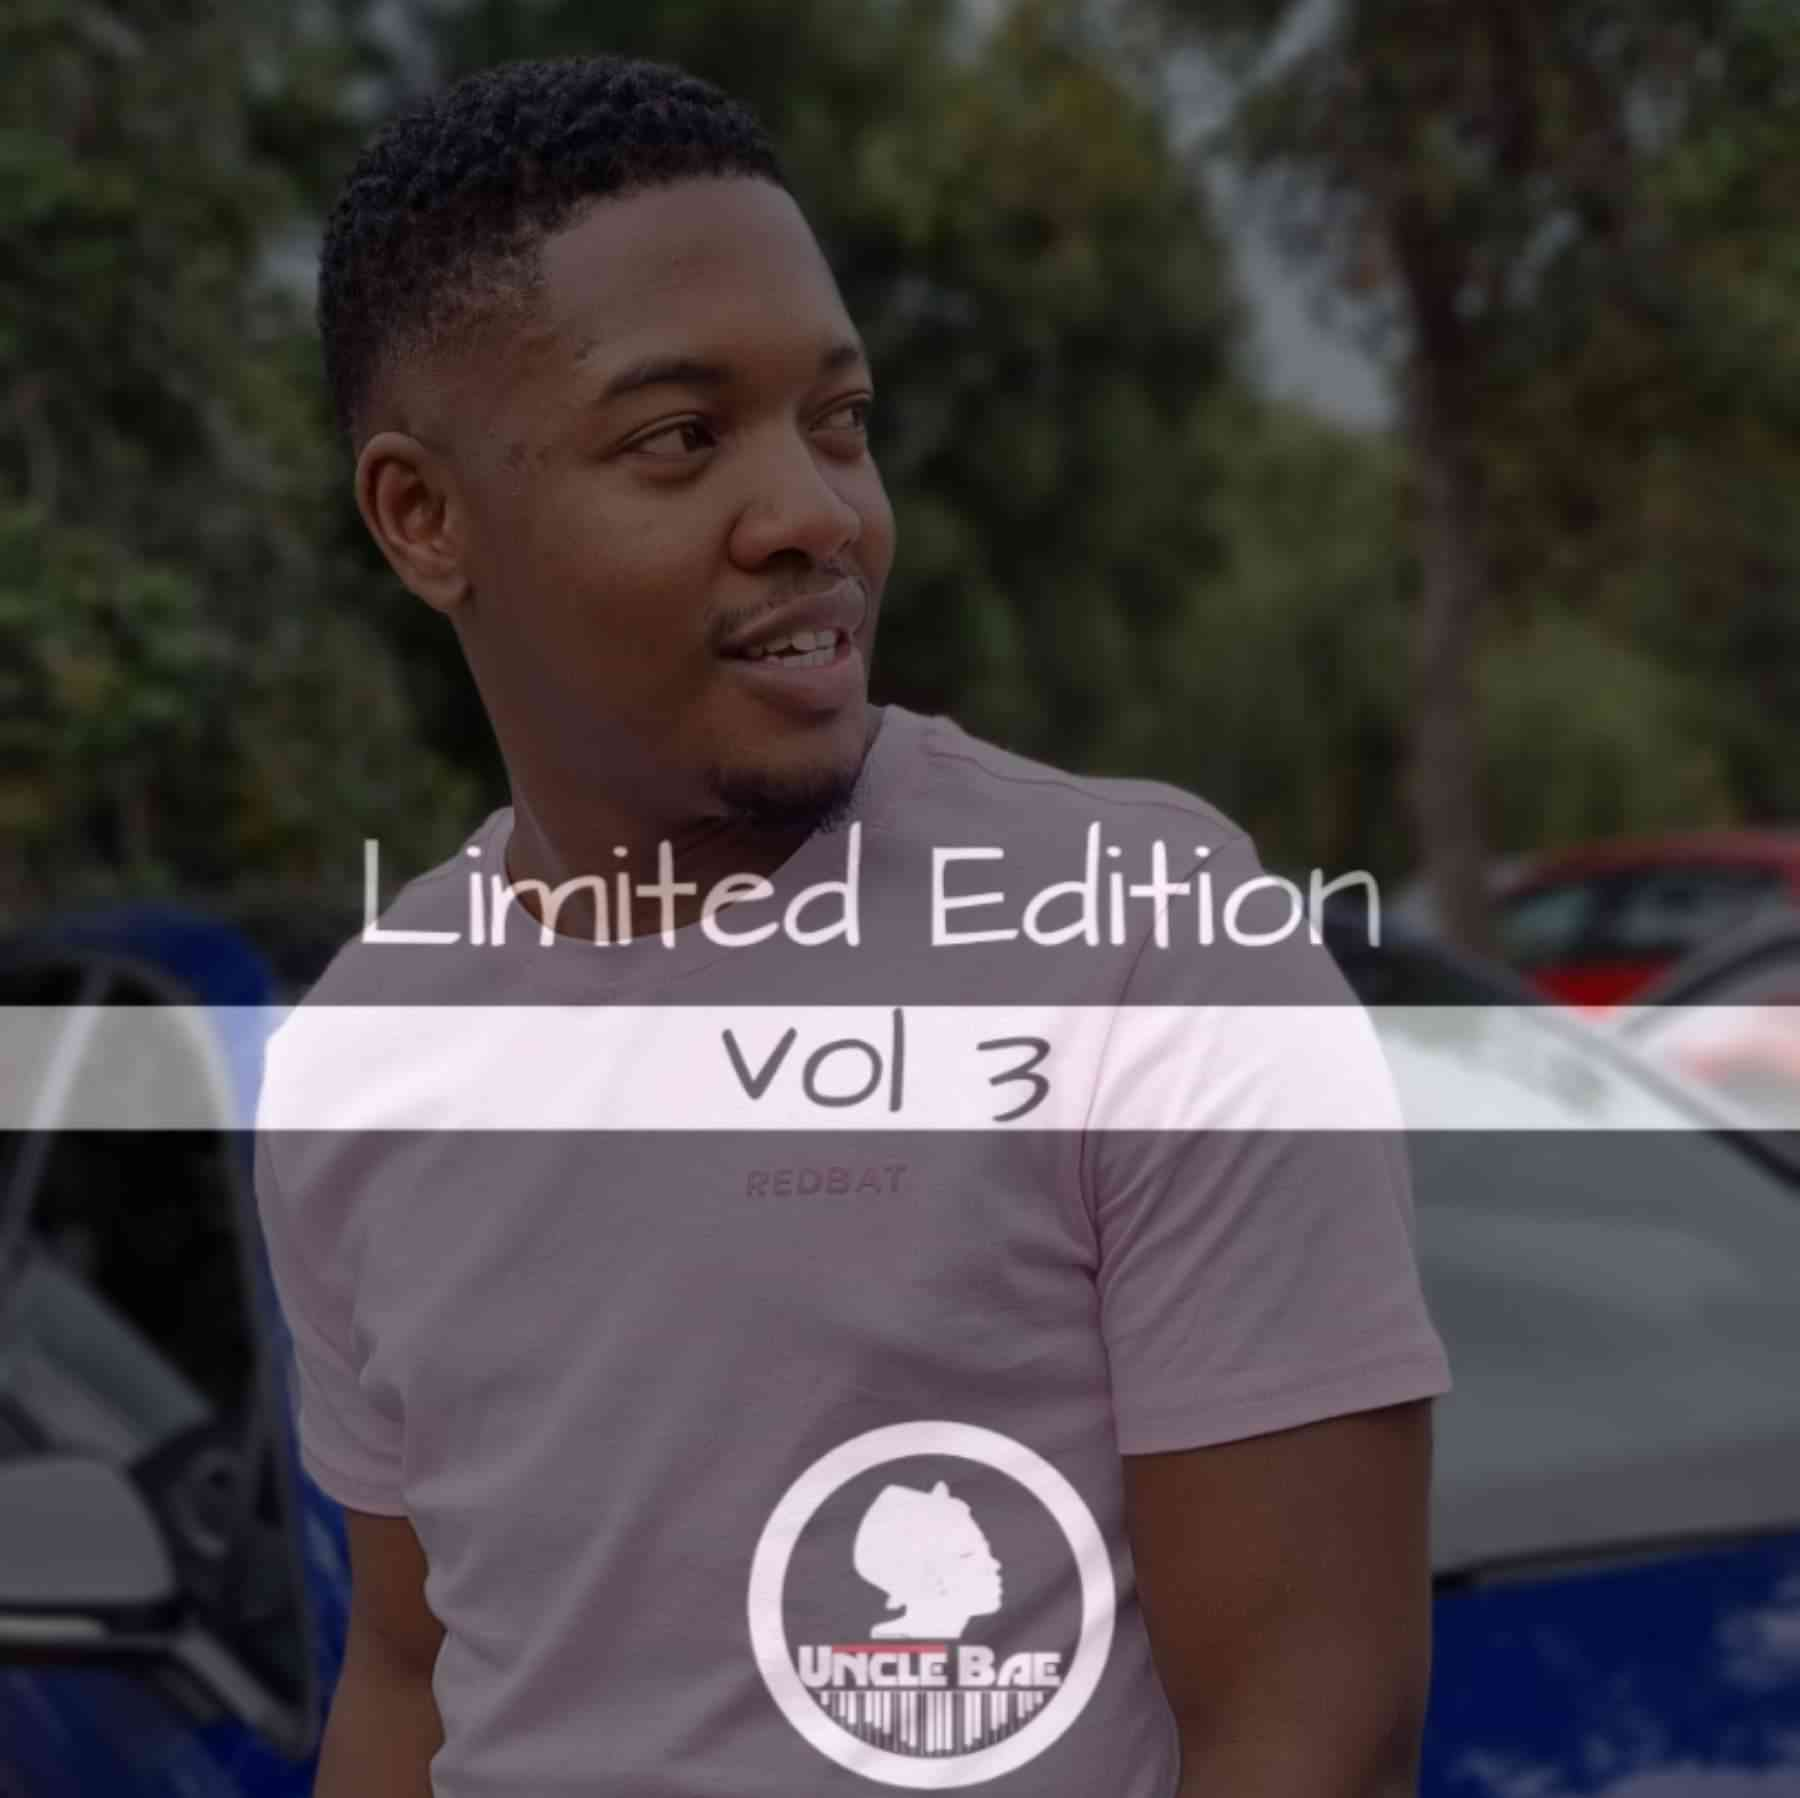 Uncle Bae Limited Edition Vol. 3 Mix